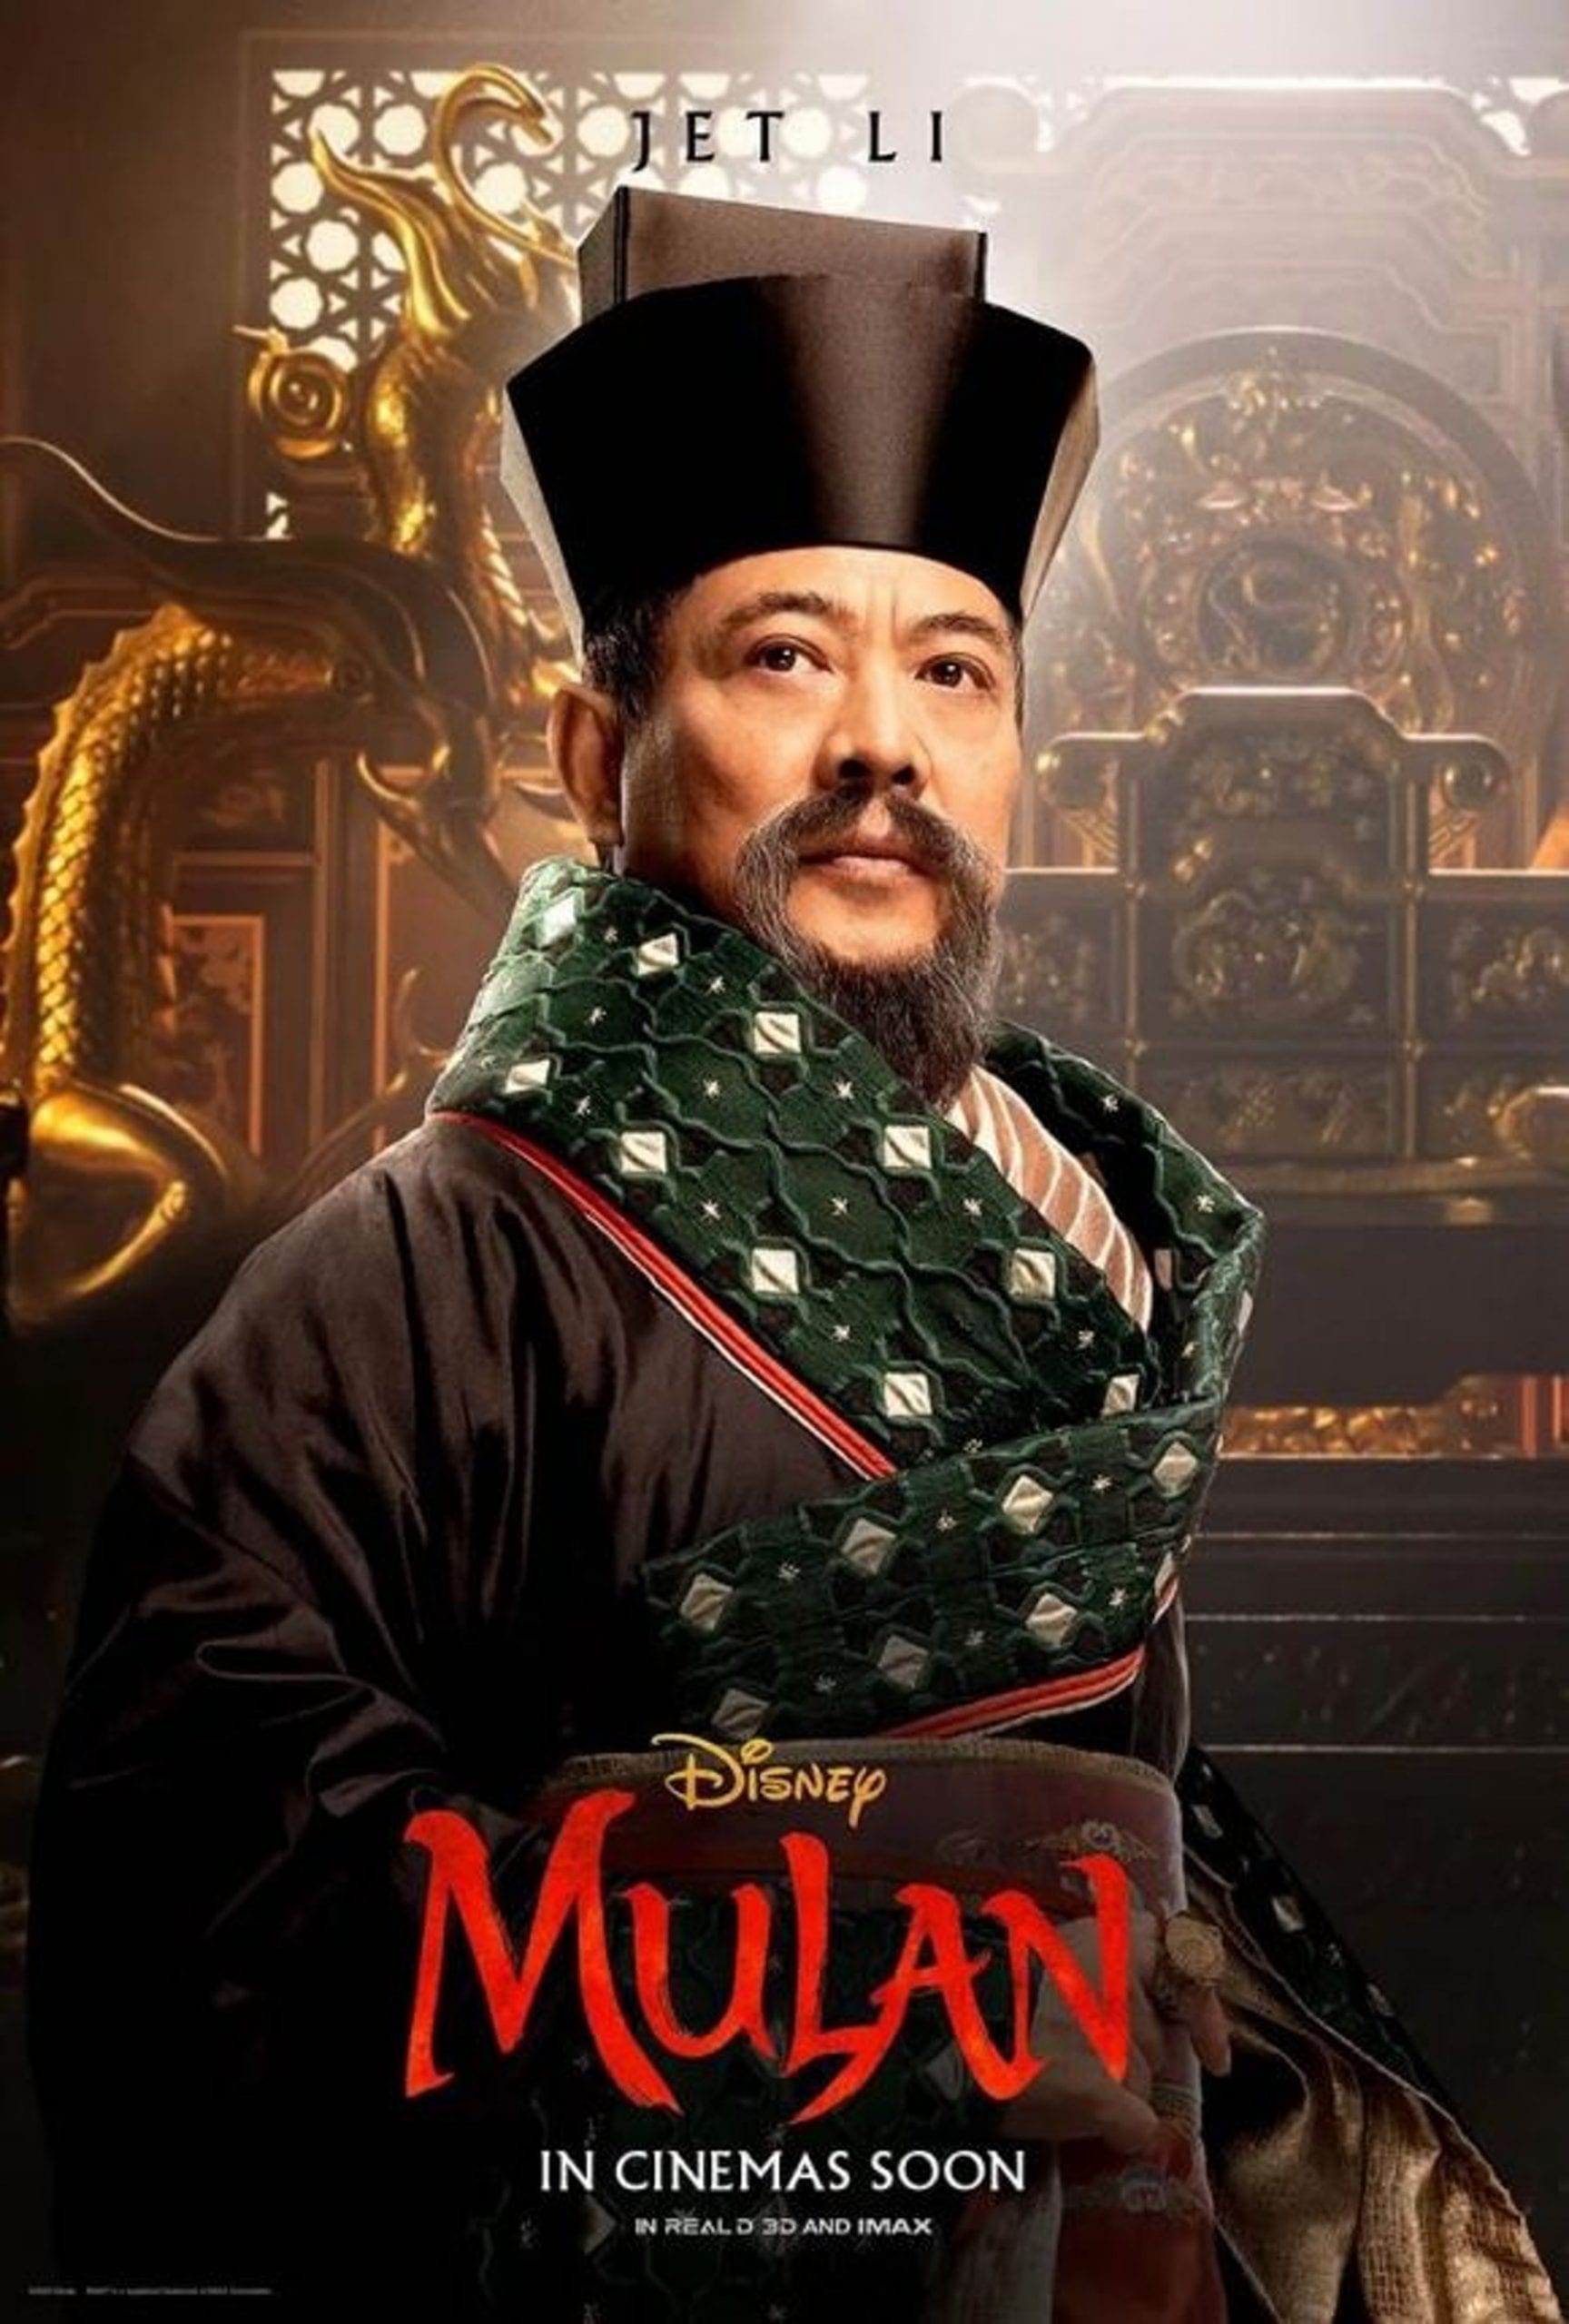 Disney Mulan Character Posters Jet Li as The Emperor of China